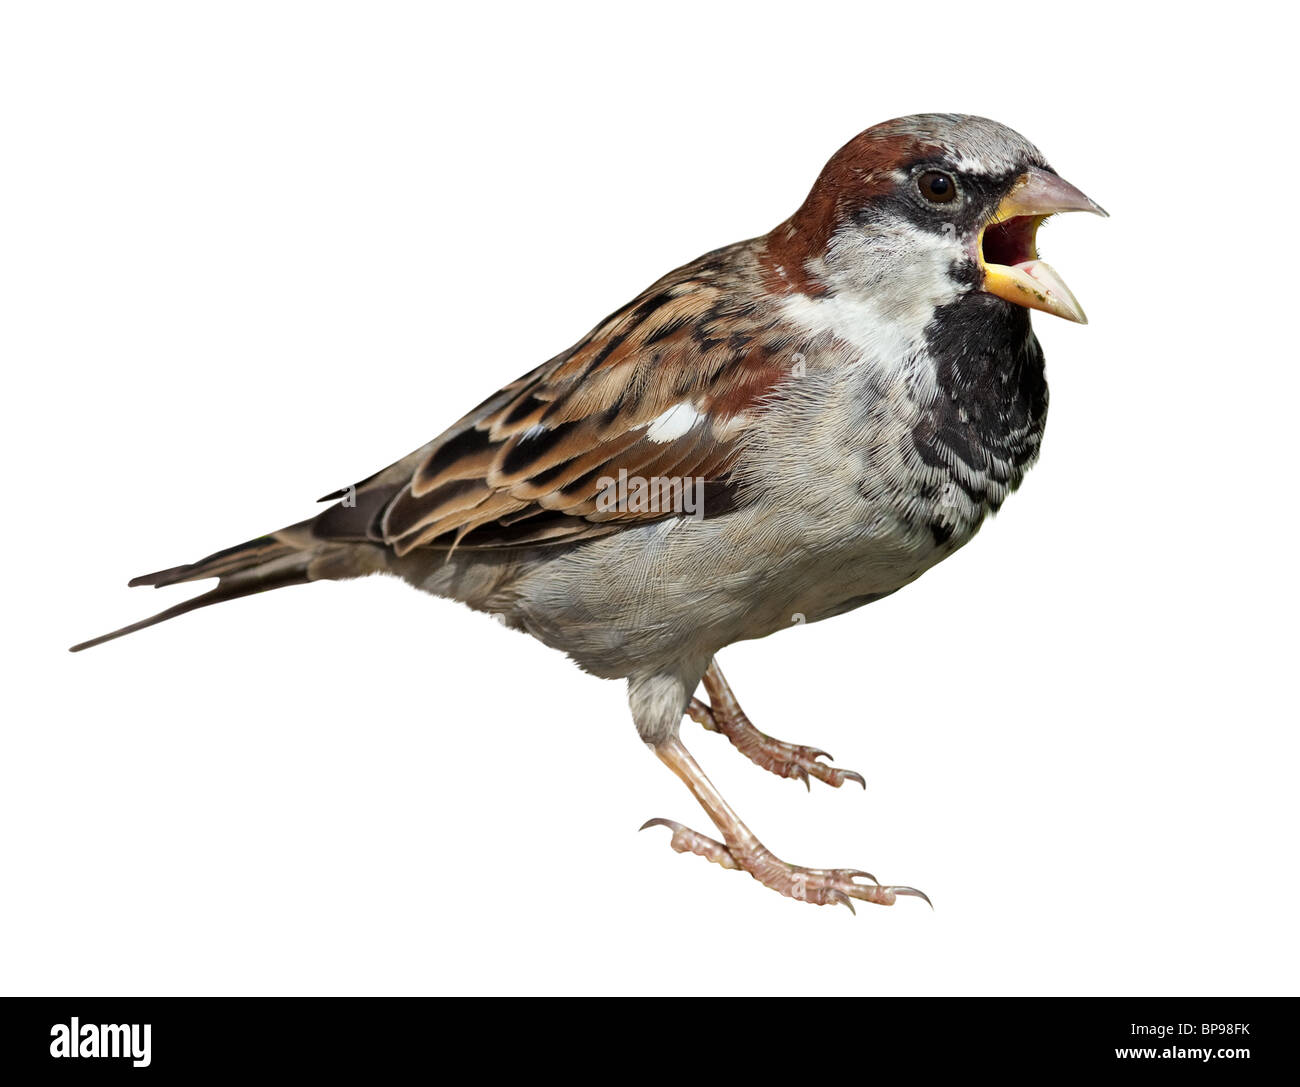 Male in front of white background, isolated. House Sparrow (Passer domesticus) - Stock Image